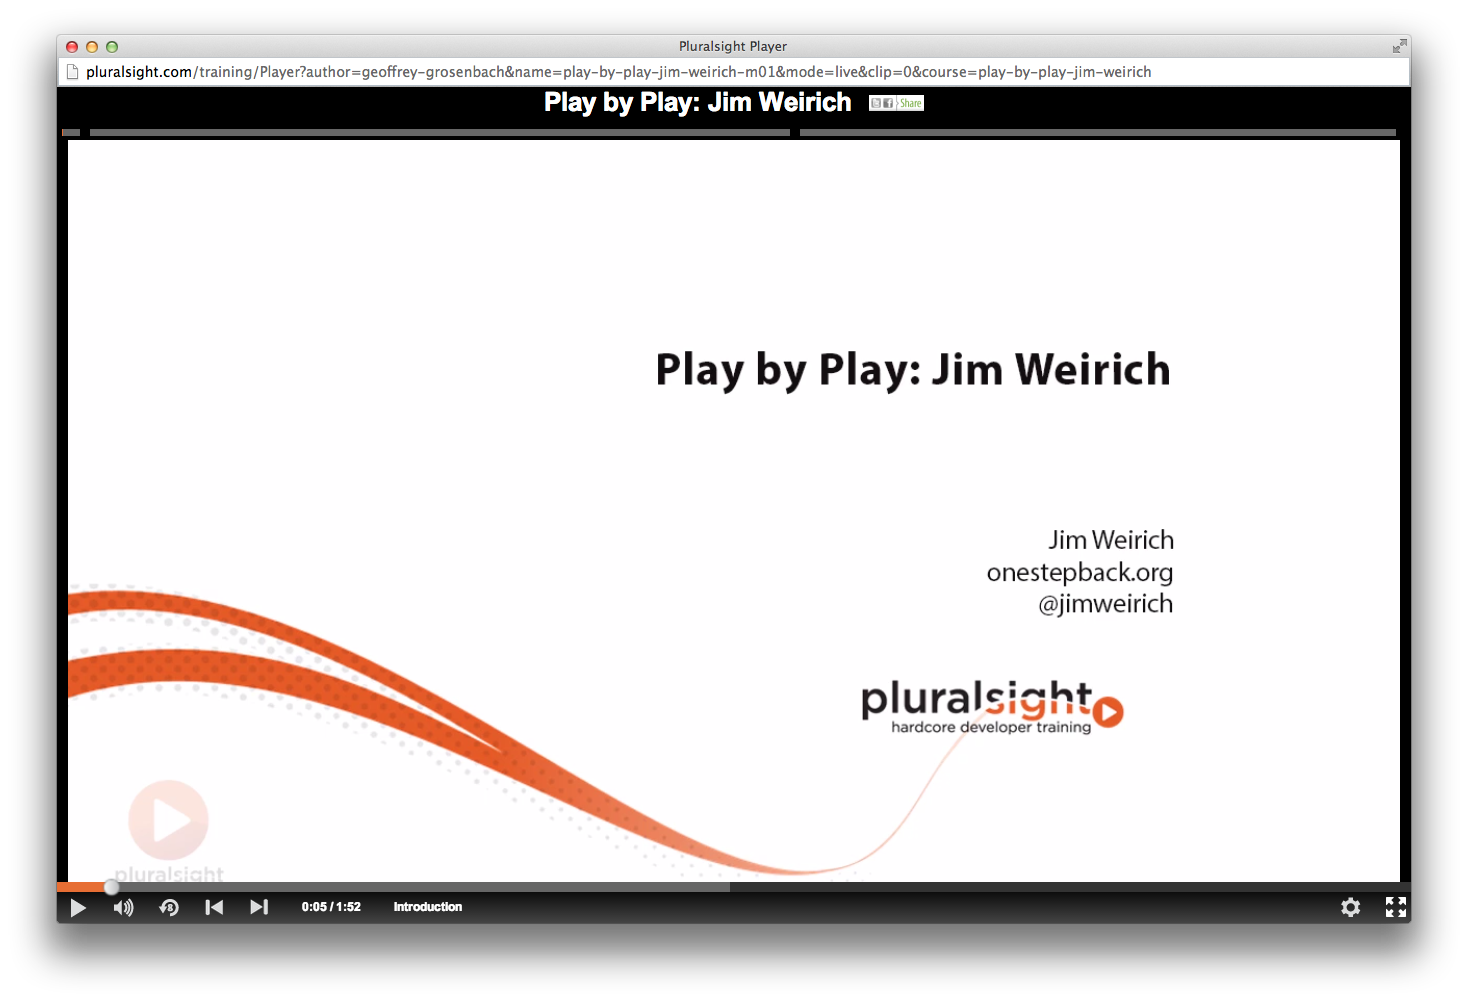 Play by Play: Jim Weirich